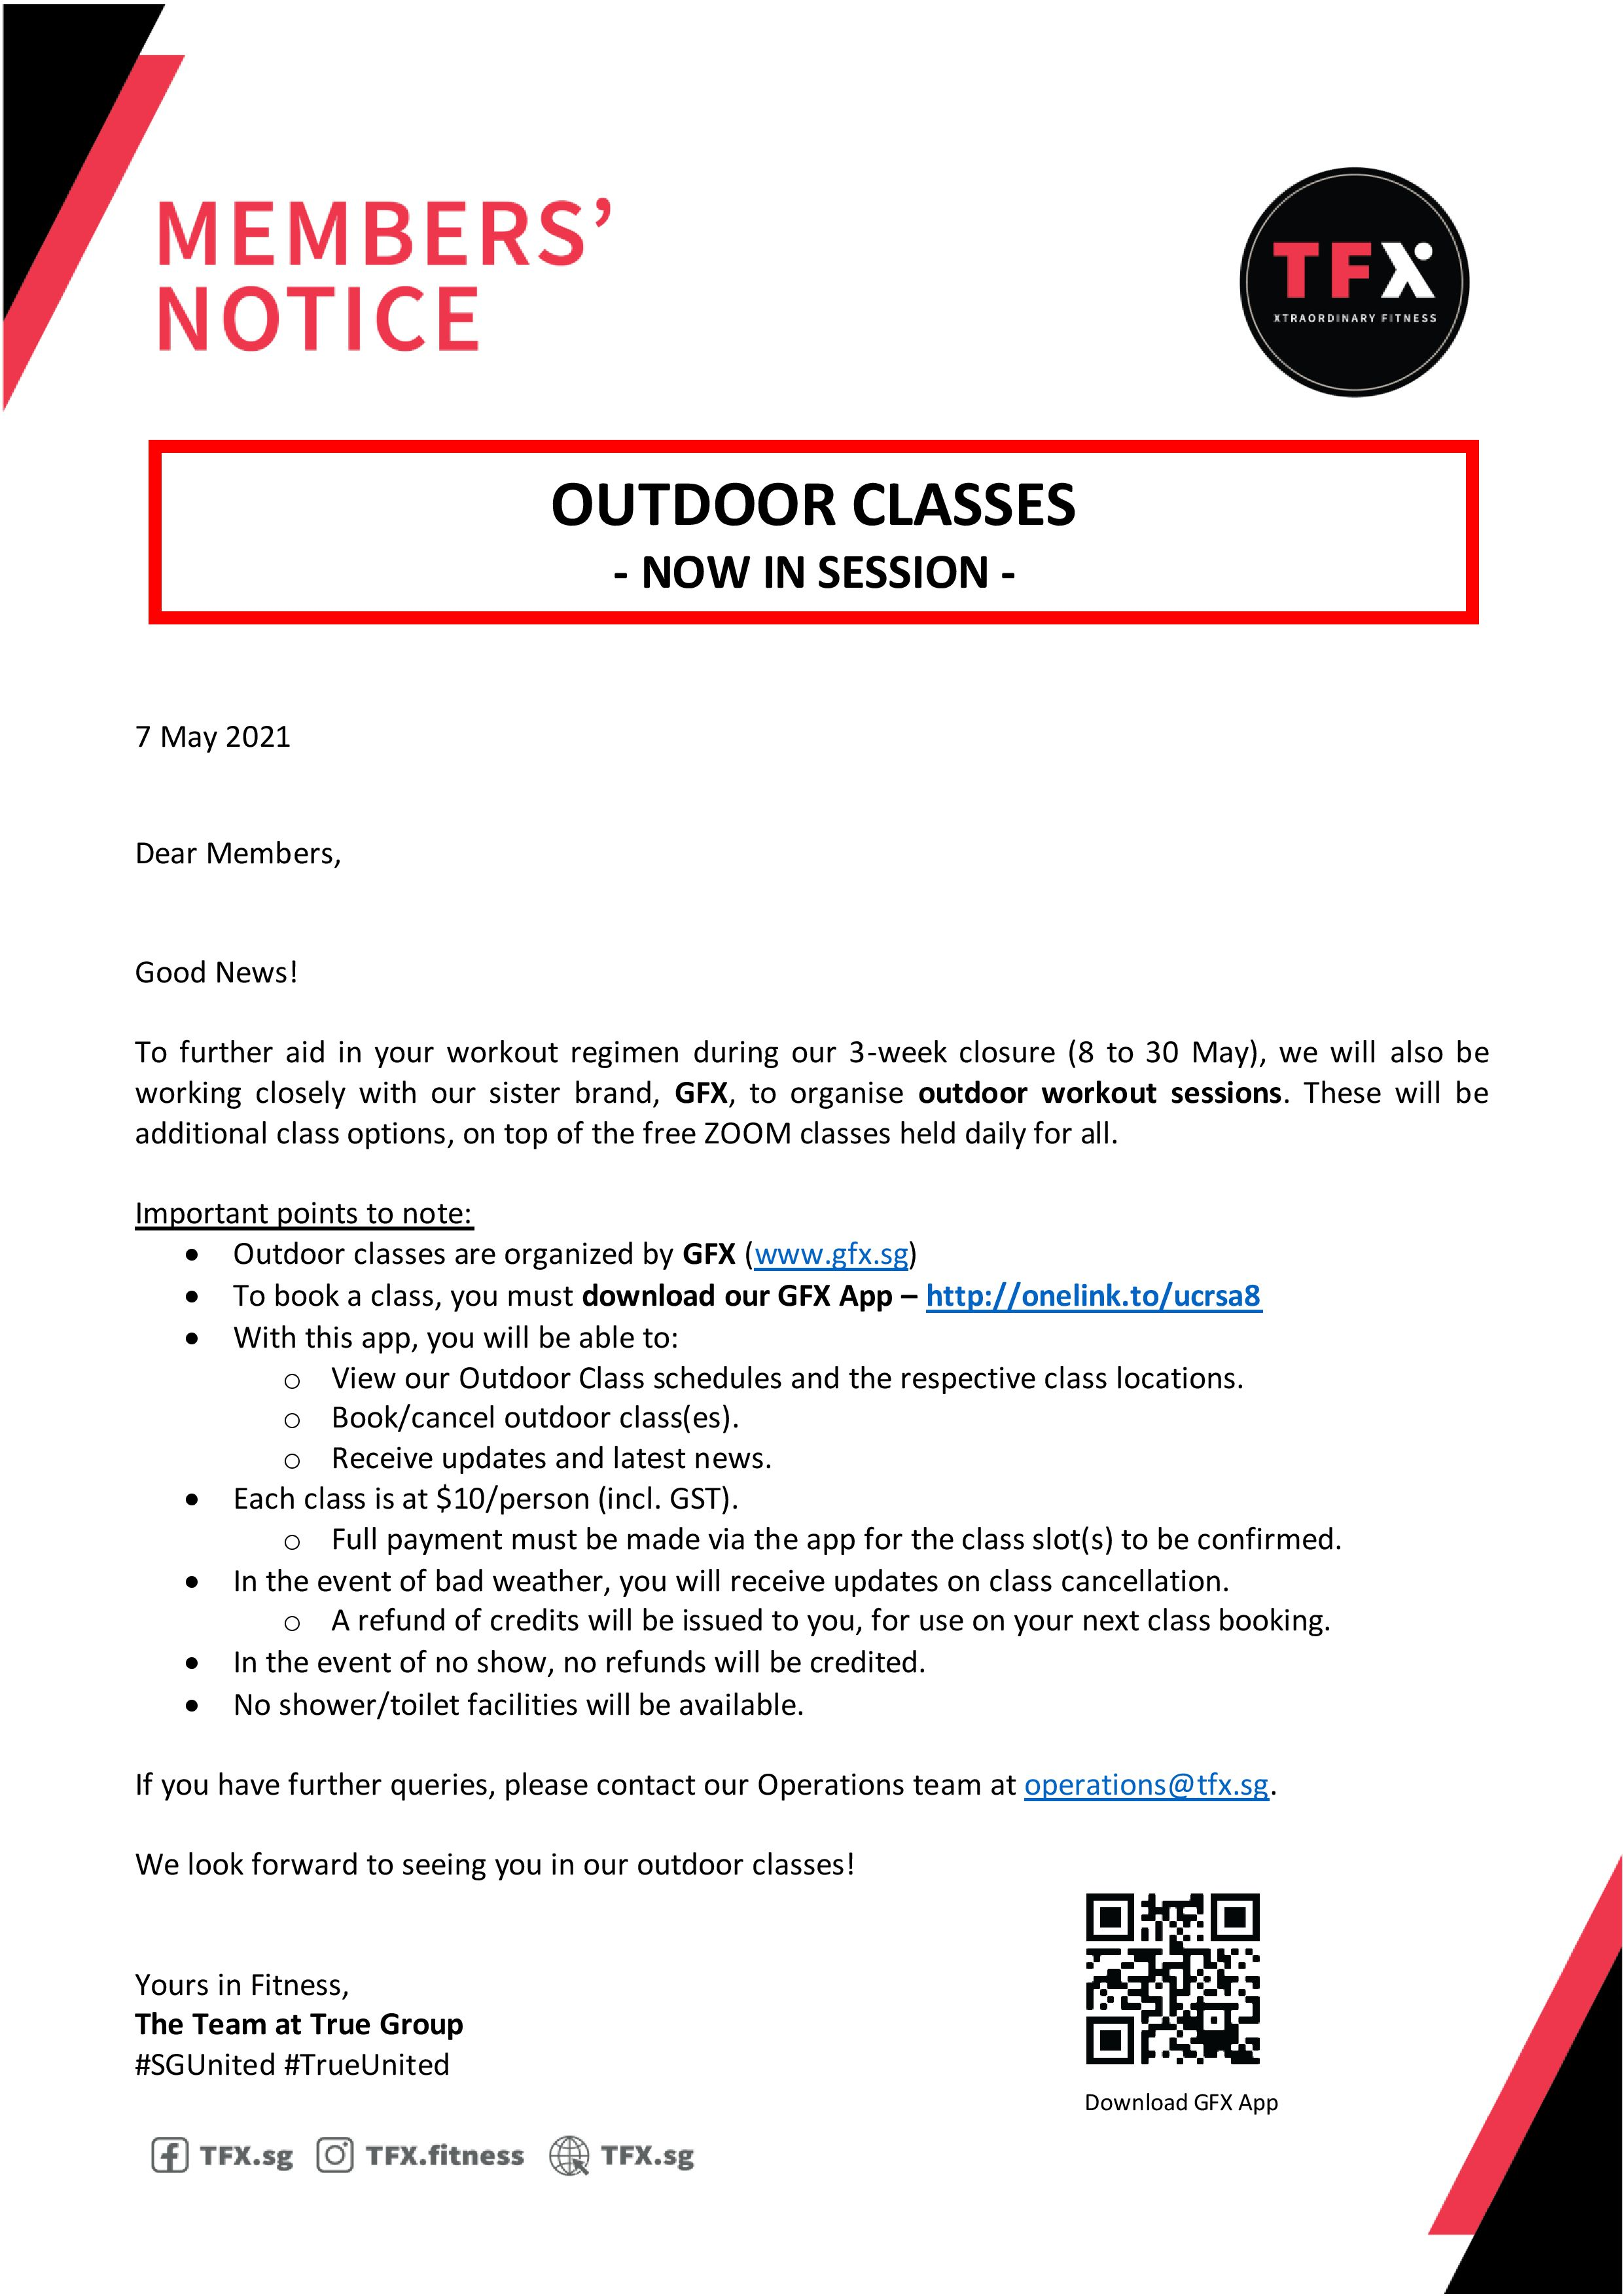 Outdoor classes by GFX